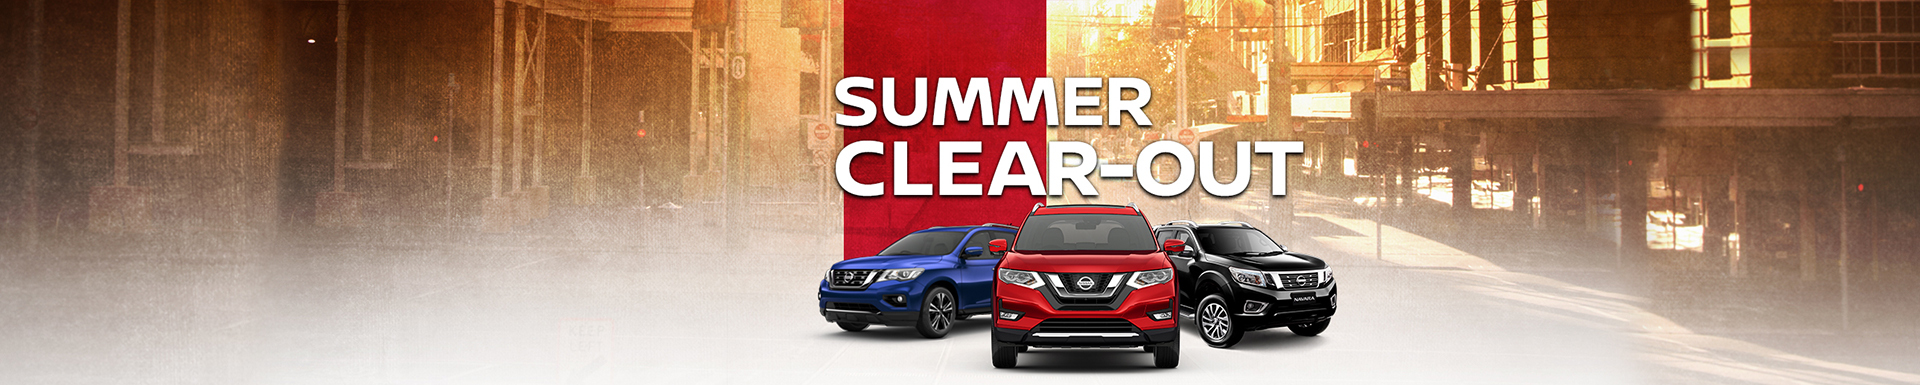 Nissan Summer Clear-Out